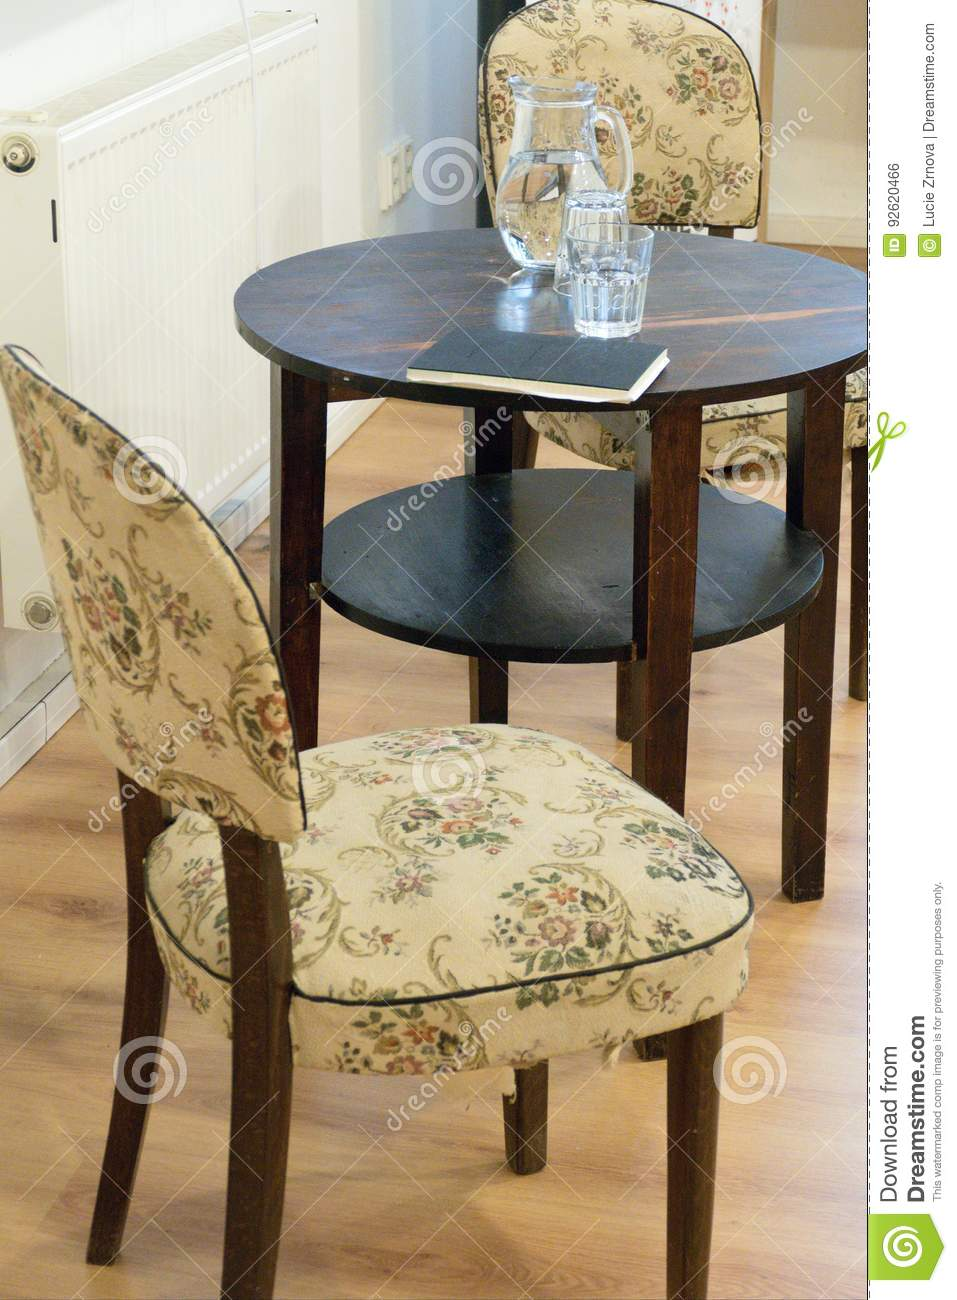 Table With Two Chairs Old Antique Table And Two Chairs Stock Photo Image Of Luxury